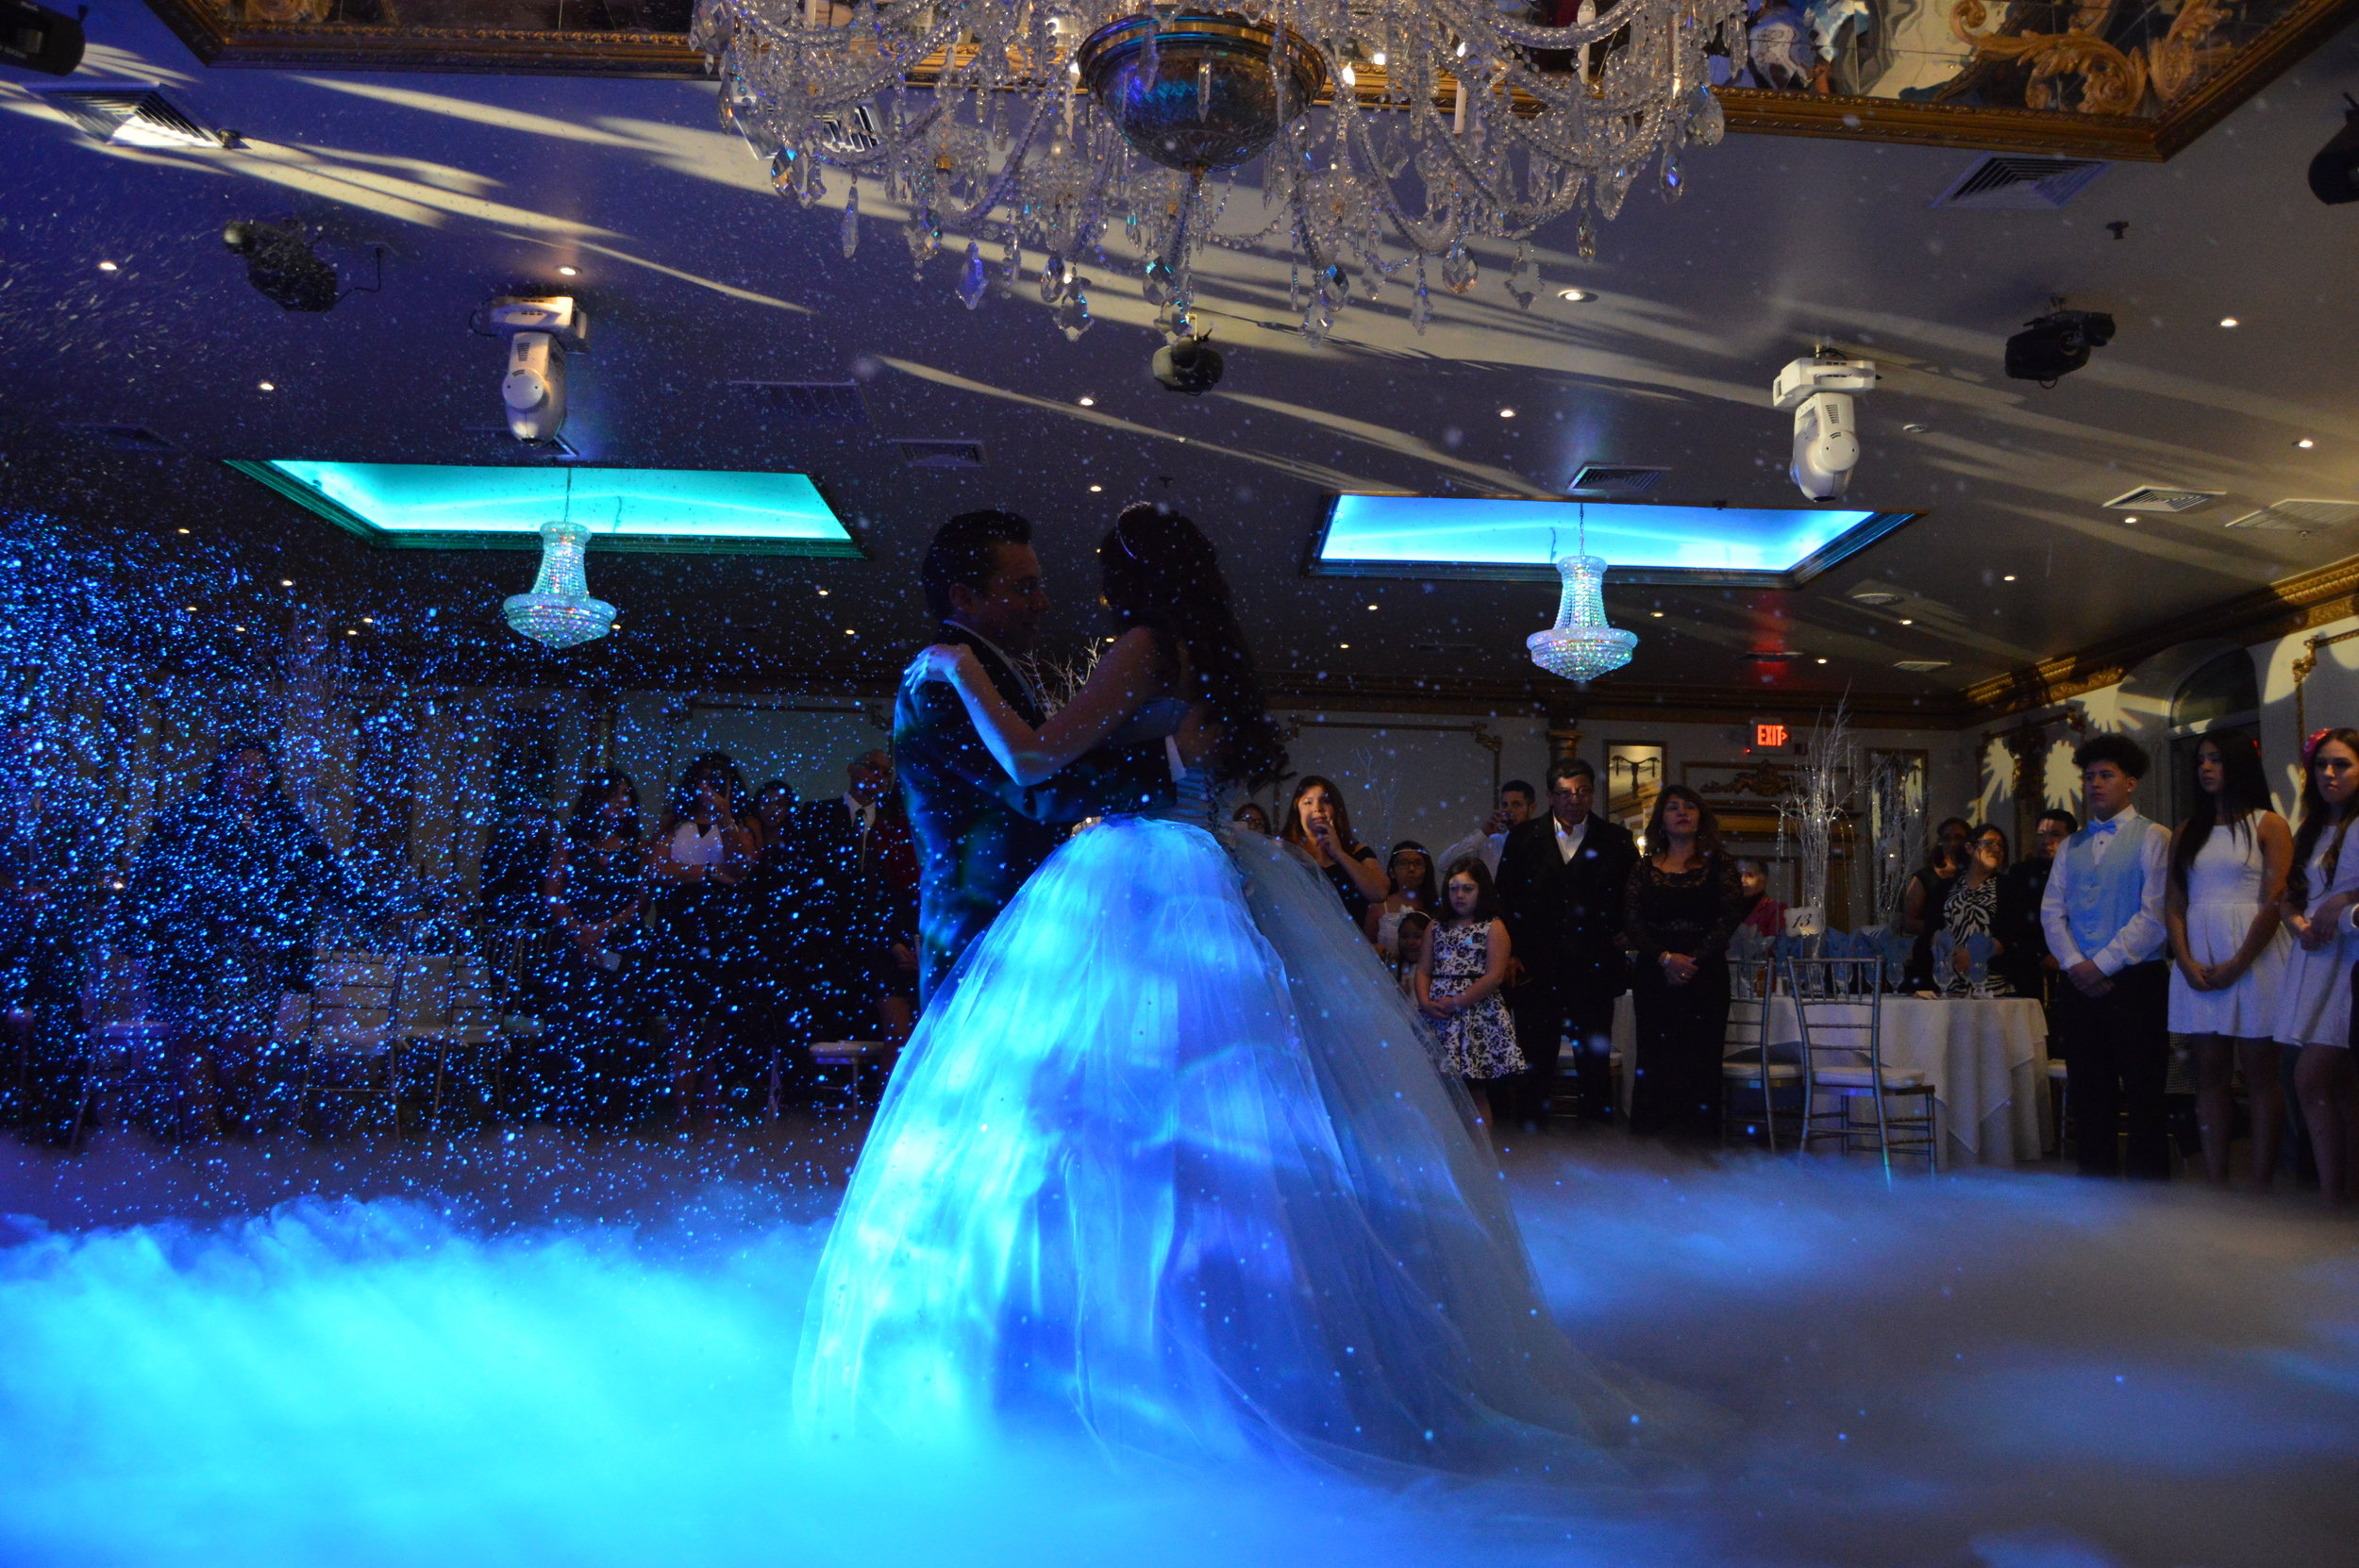 MAKE IT SNOW  This popular effect provides the illusion of snow falling. It is safe, approved at most venues and will transform your dance floor into a magical winter wonderland theme.